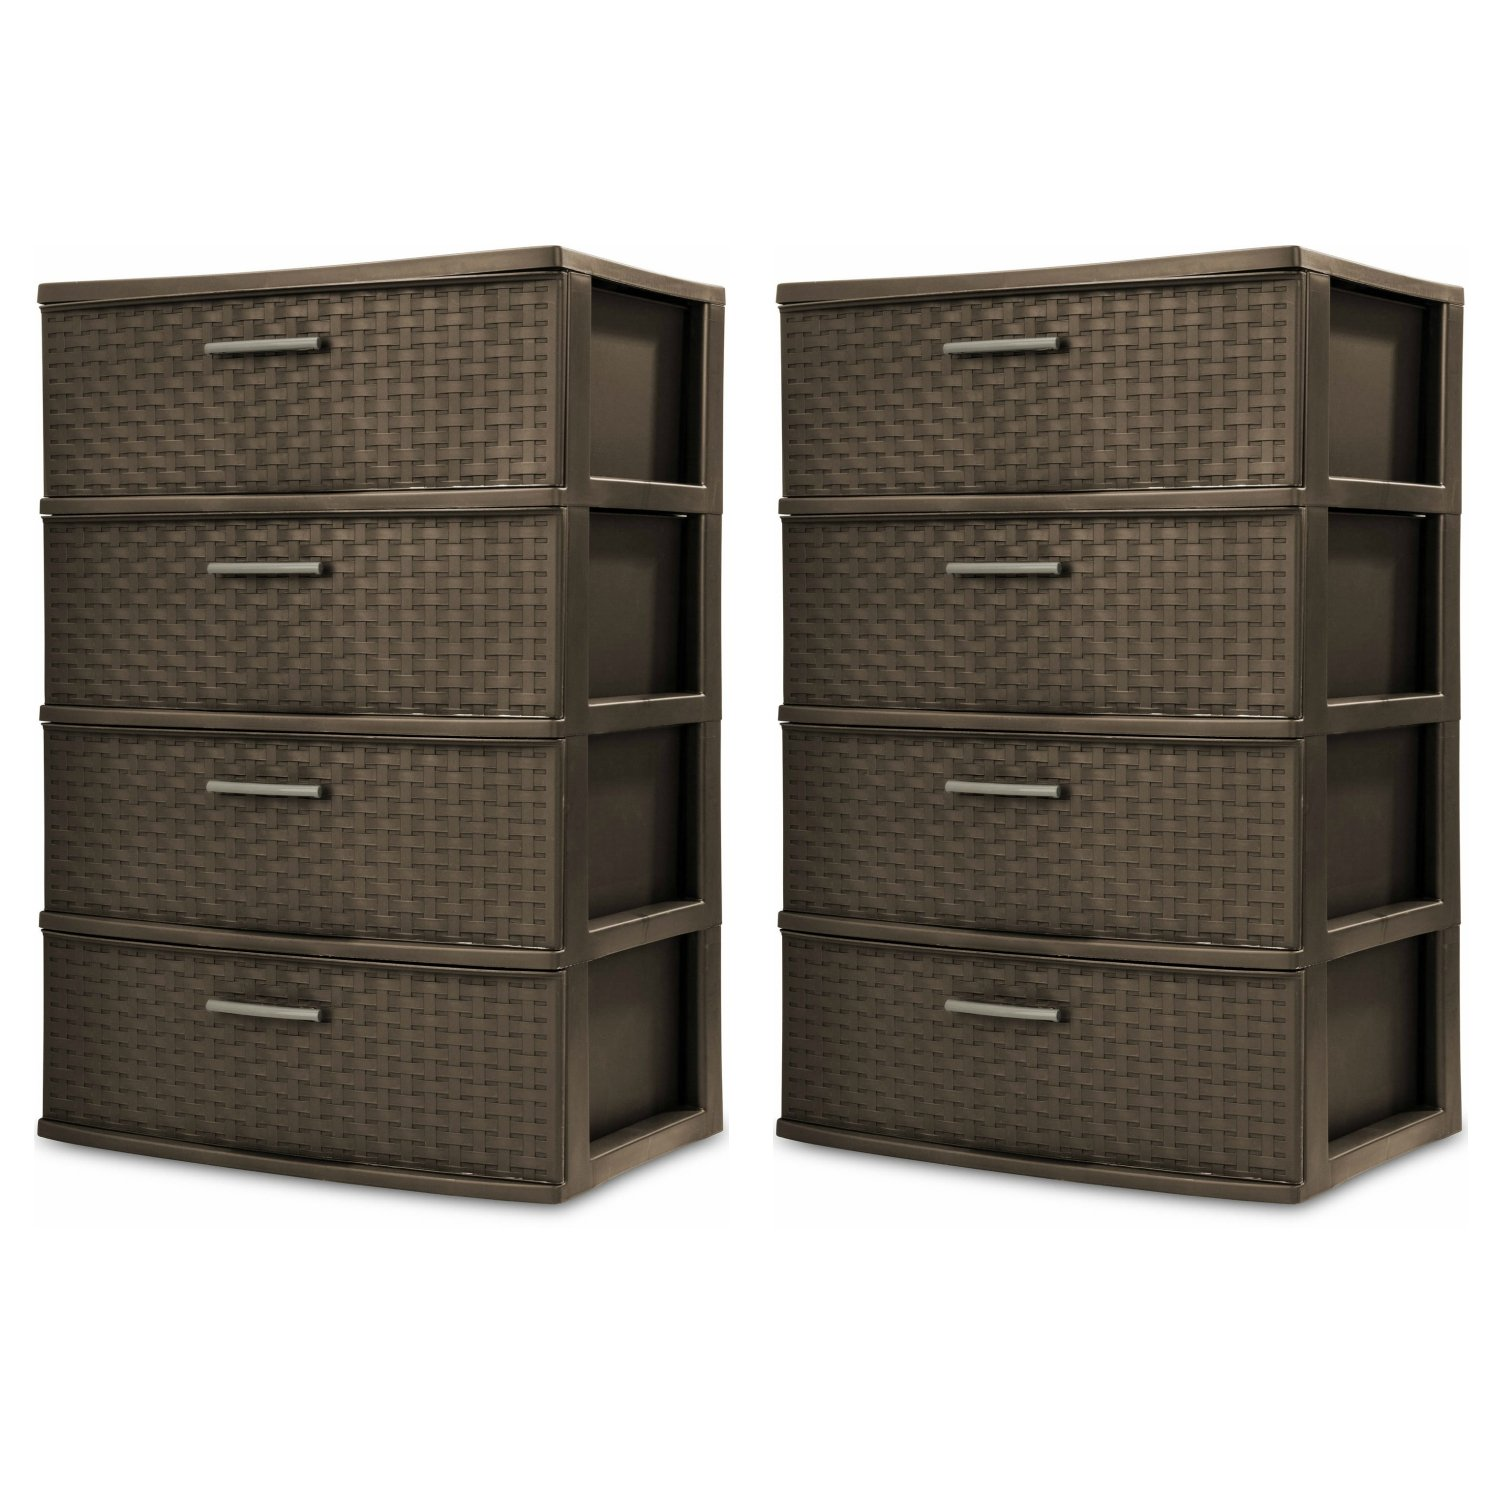 Sterilite 4-Drawer Wide Weave Tower, Espresso Frame & Drawers w/ Driftwood Handles, 2-Pack by STERILITE